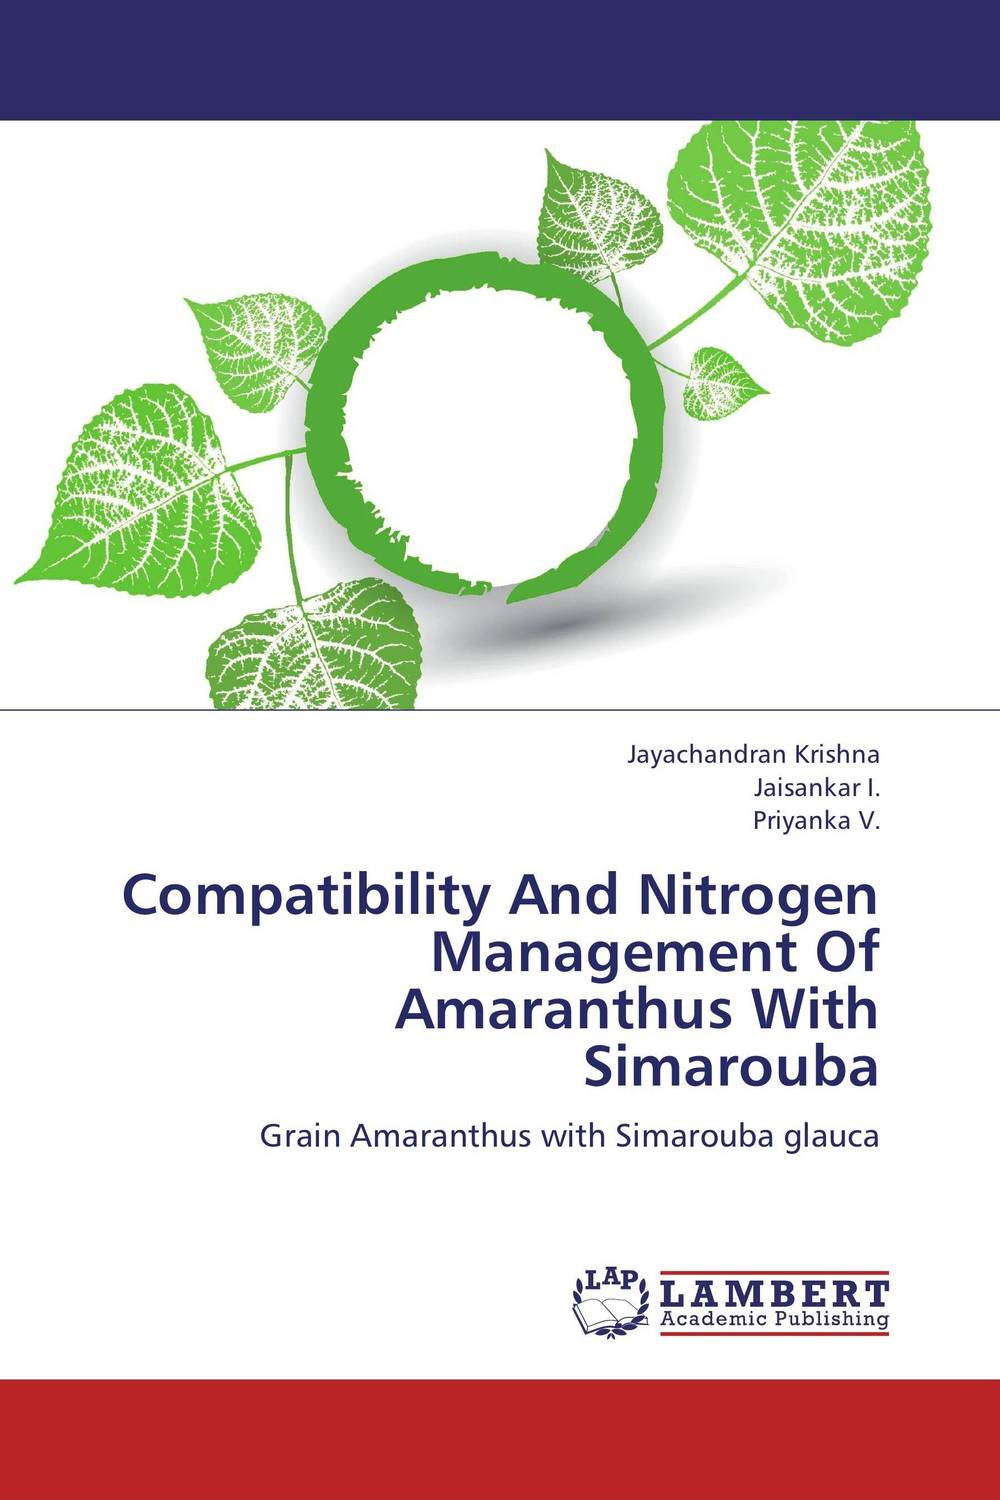 Compatibility And Nitrogen Management Of Amaranthus With Simarouba found in brooklyn